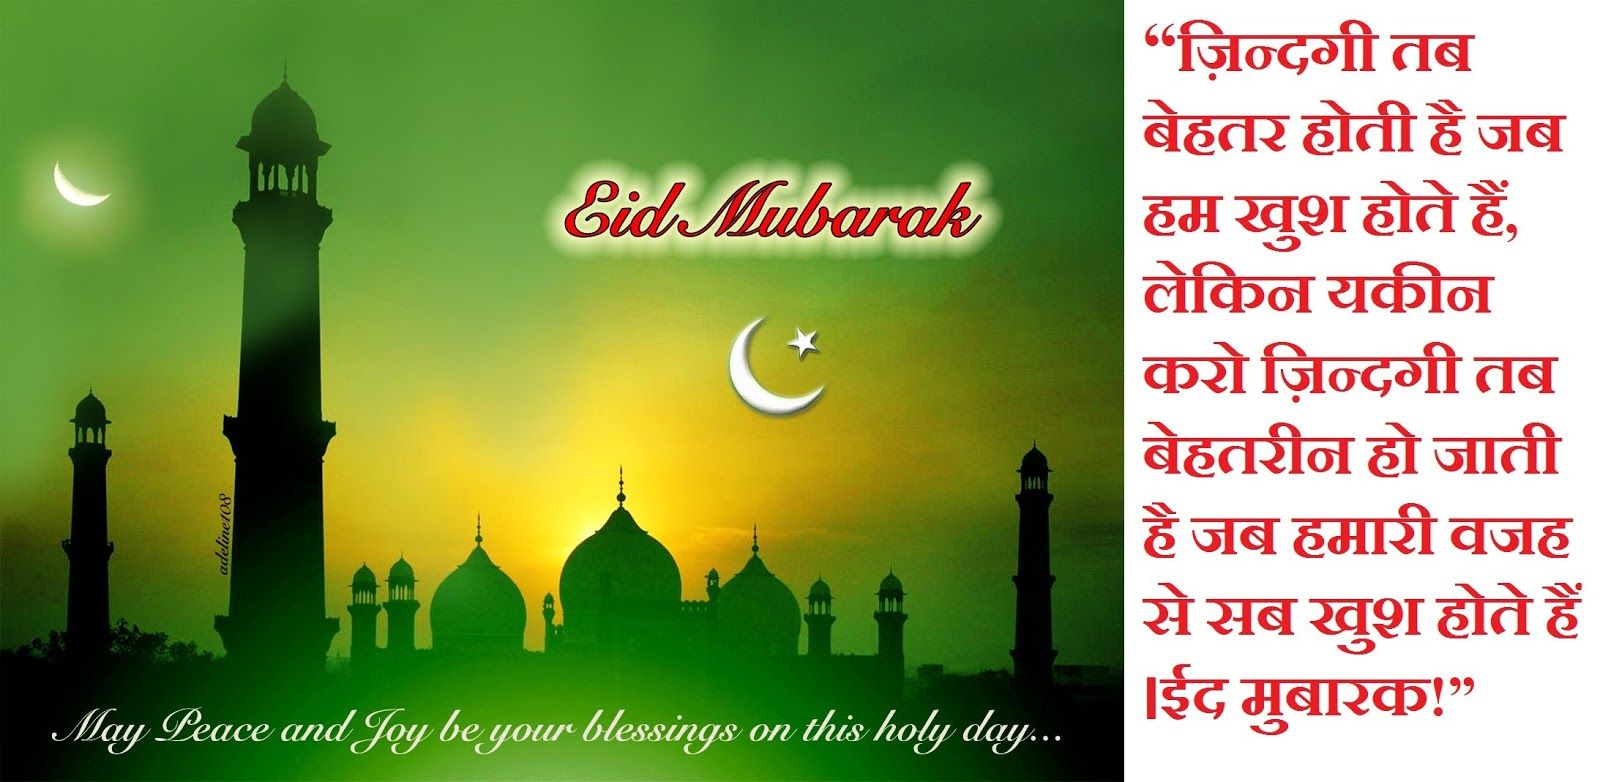 Eid Ul Adha 2018 Saying In Hindi Eid Ul Adha Quotes Pinterest Eid